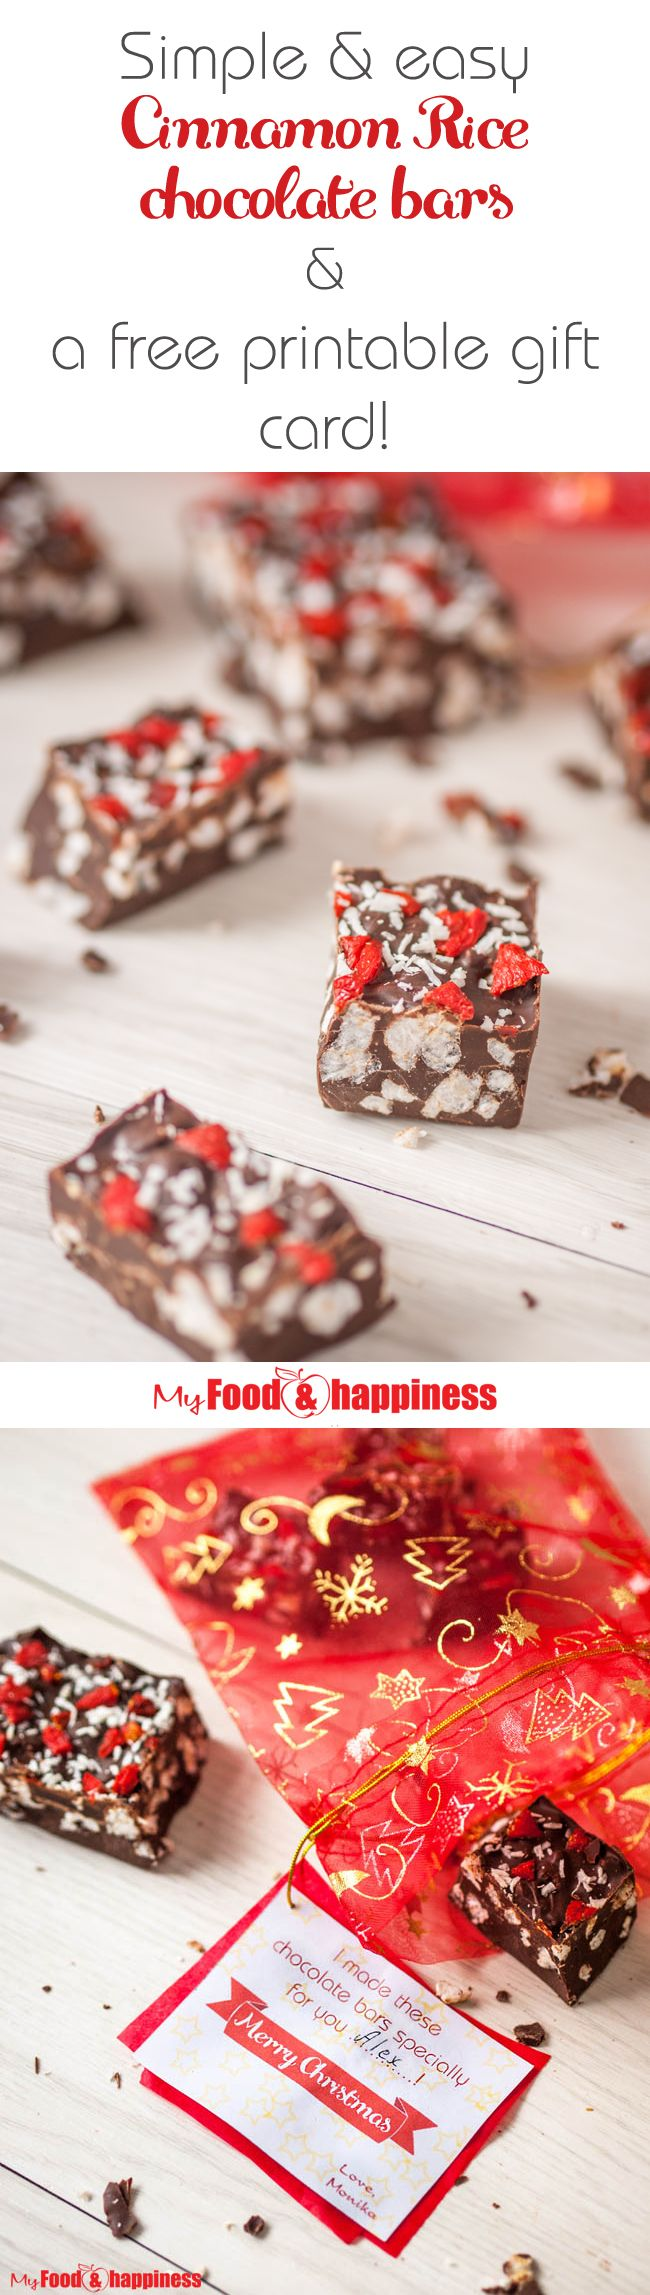 Easy and simple Cinnamon Rice chocolate bars with healthy toppings! This is a great idea for a personalised Christmas gift for your friends and family! The post includes a pretty gift card you can print and attach to your gifts as well! Merry Christmas!